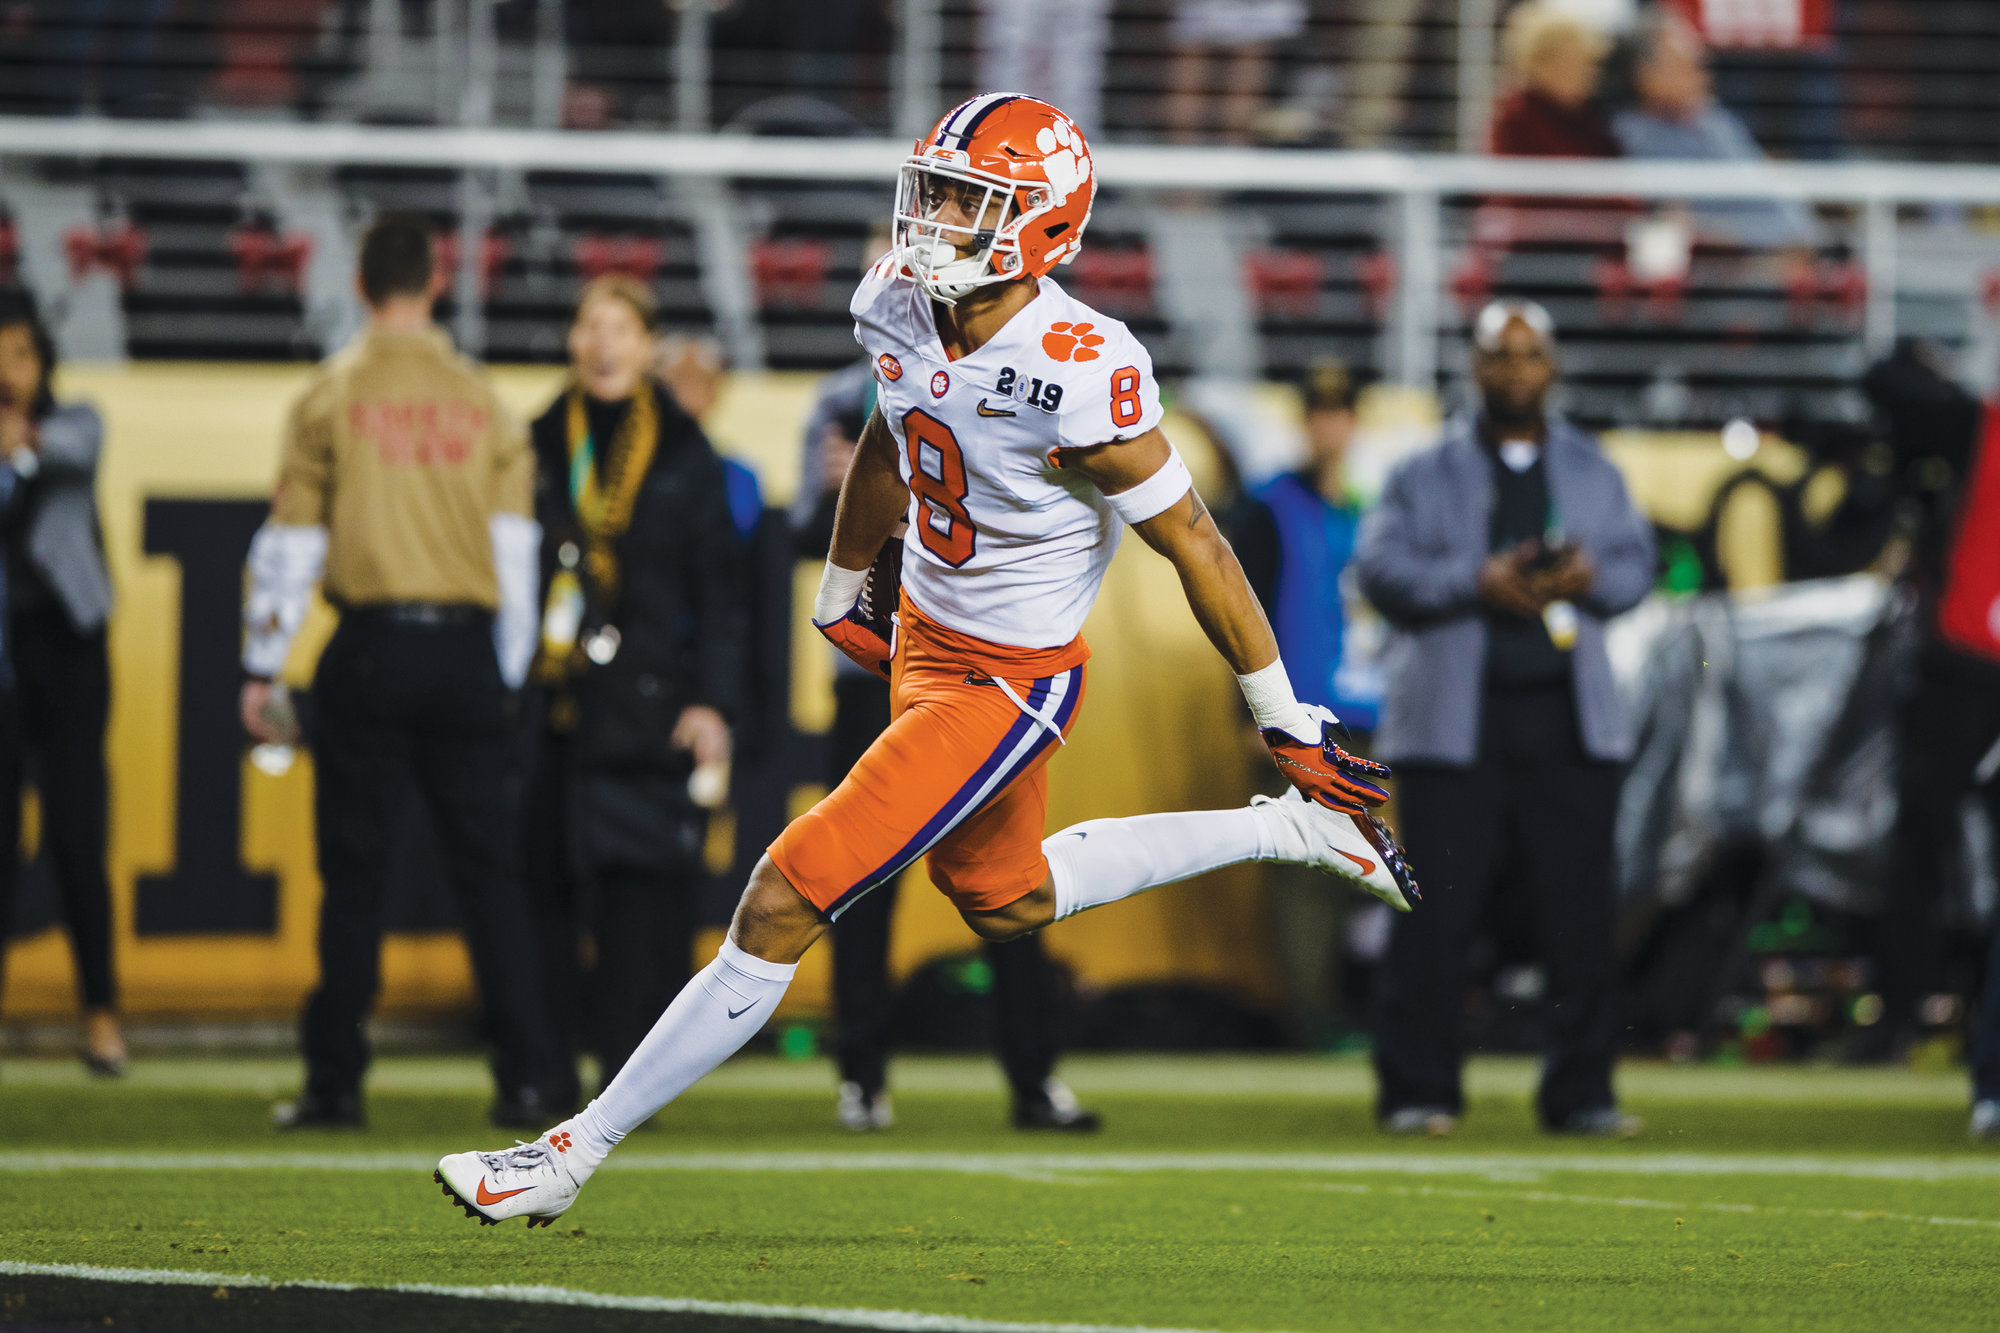 Clemson defensive back A.J. Terrell finishes off a pick-six interception return for a touchdown to give